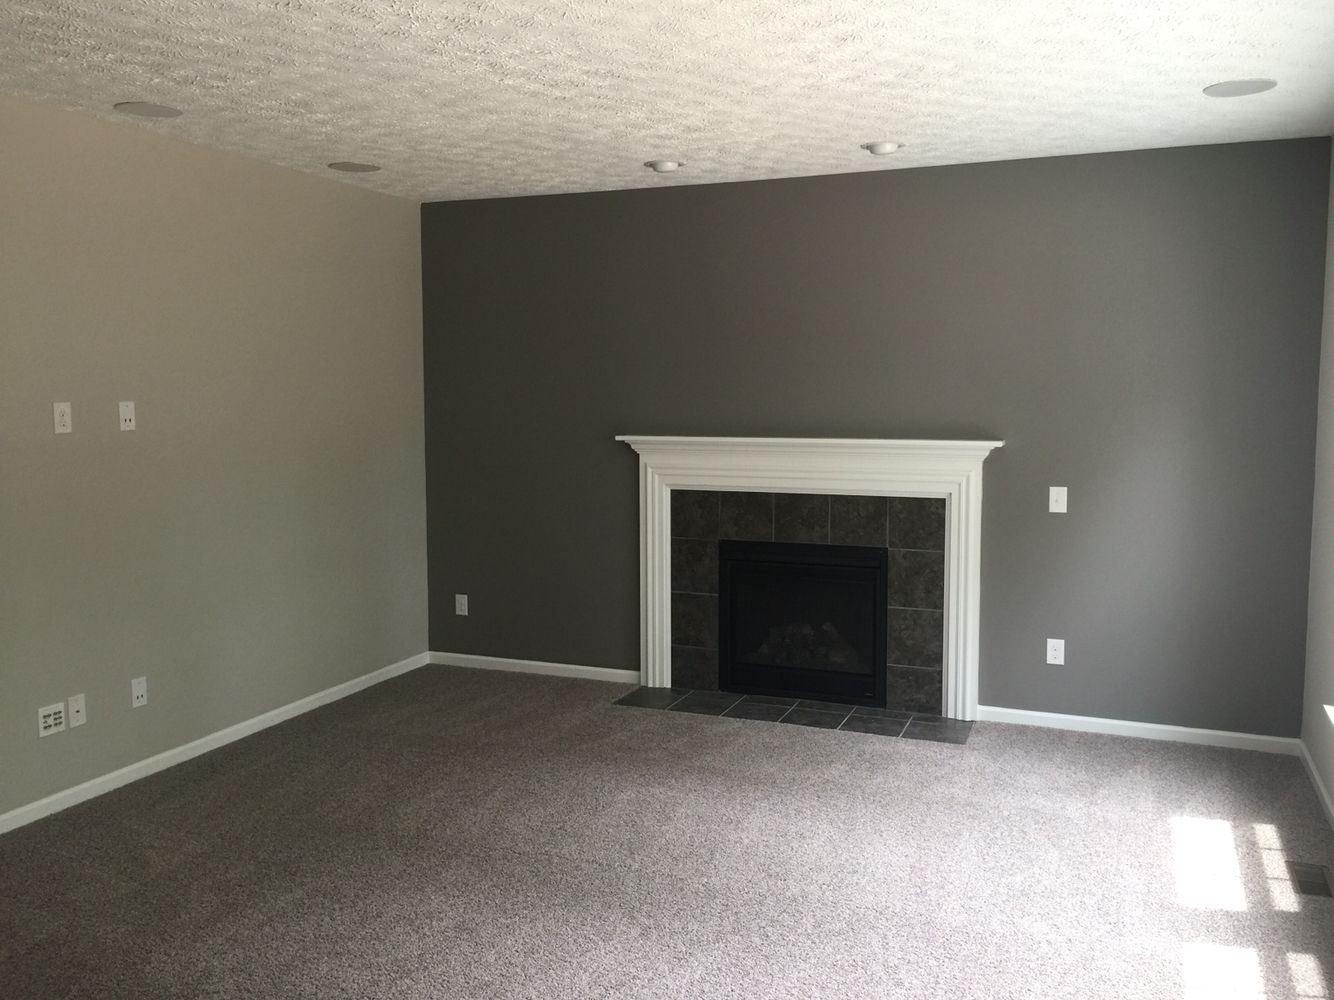 What Color Rug With Grey Walls Went With Sherwin Williams Agreeable Gray Dovetail Gray